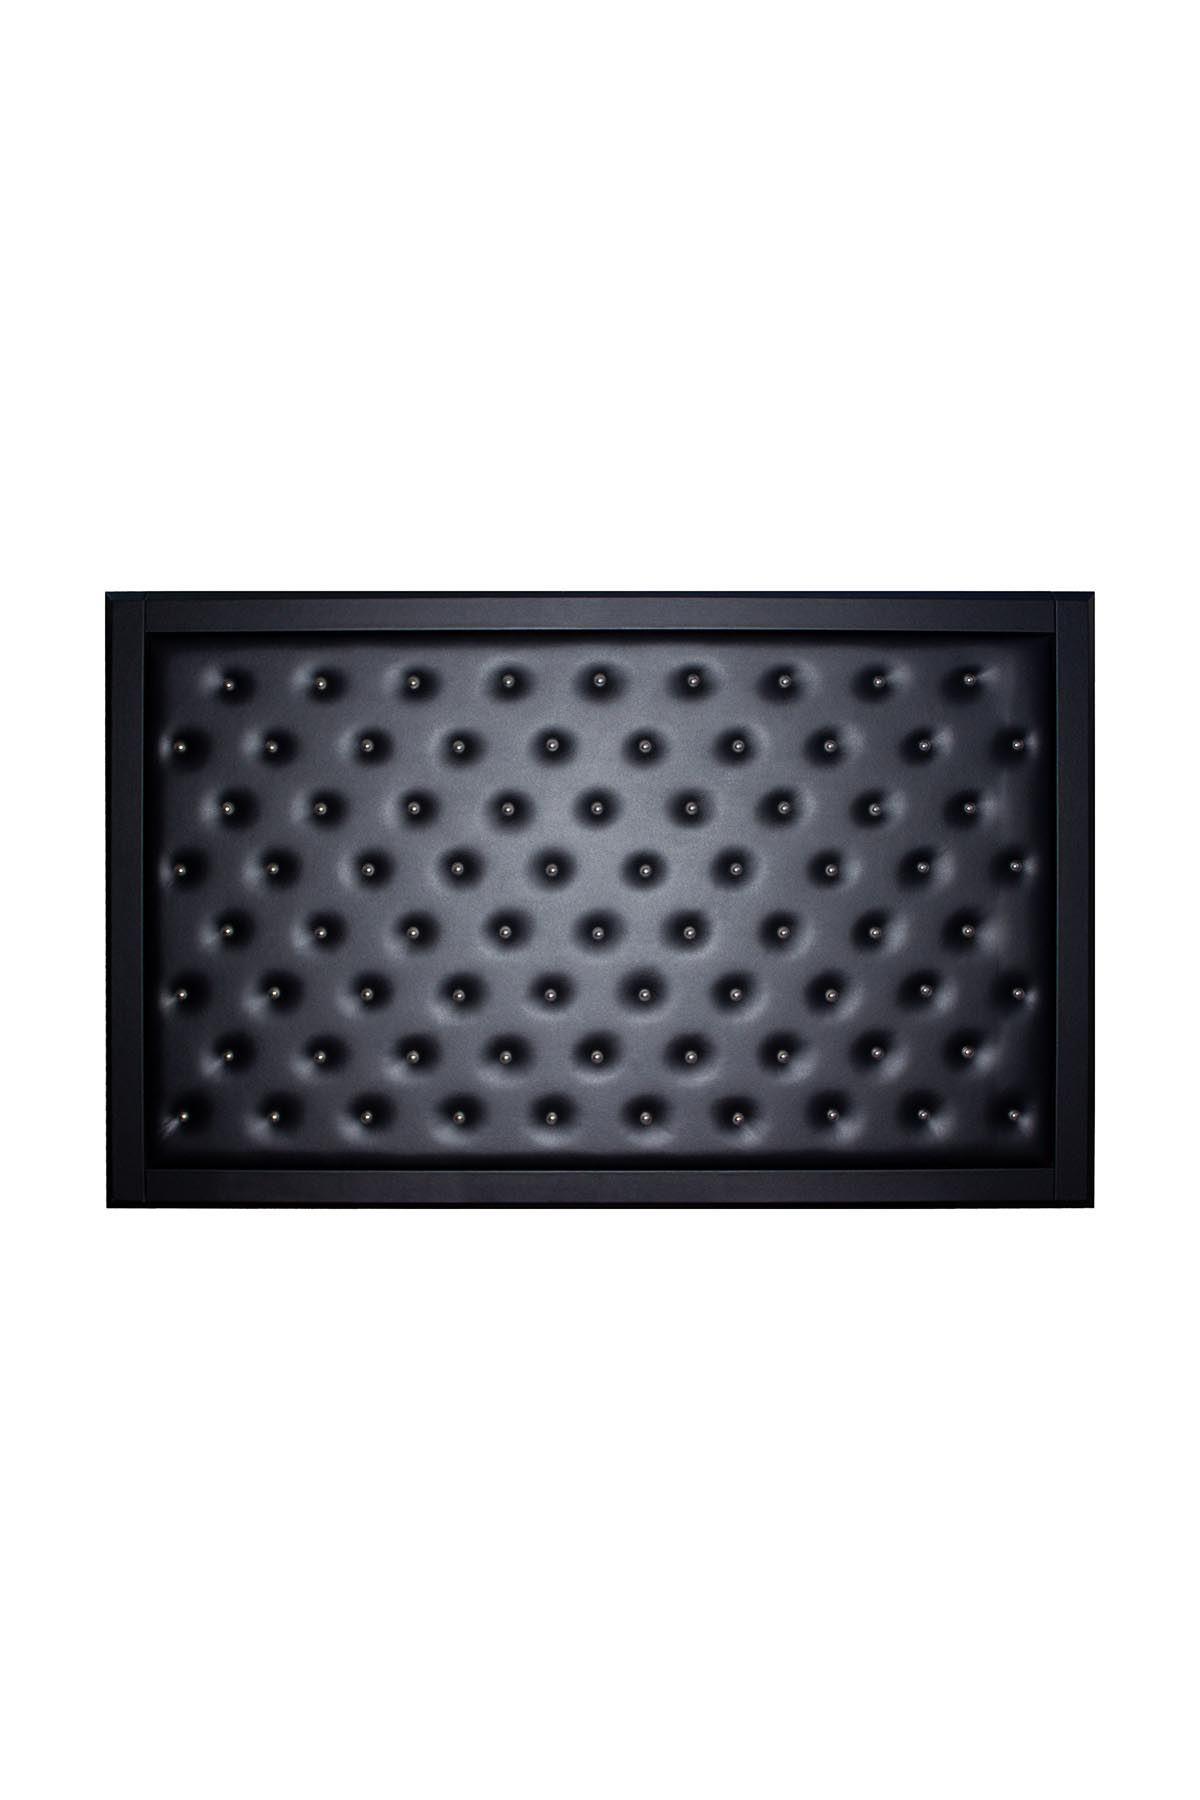 Buttoned Manager Board - Black